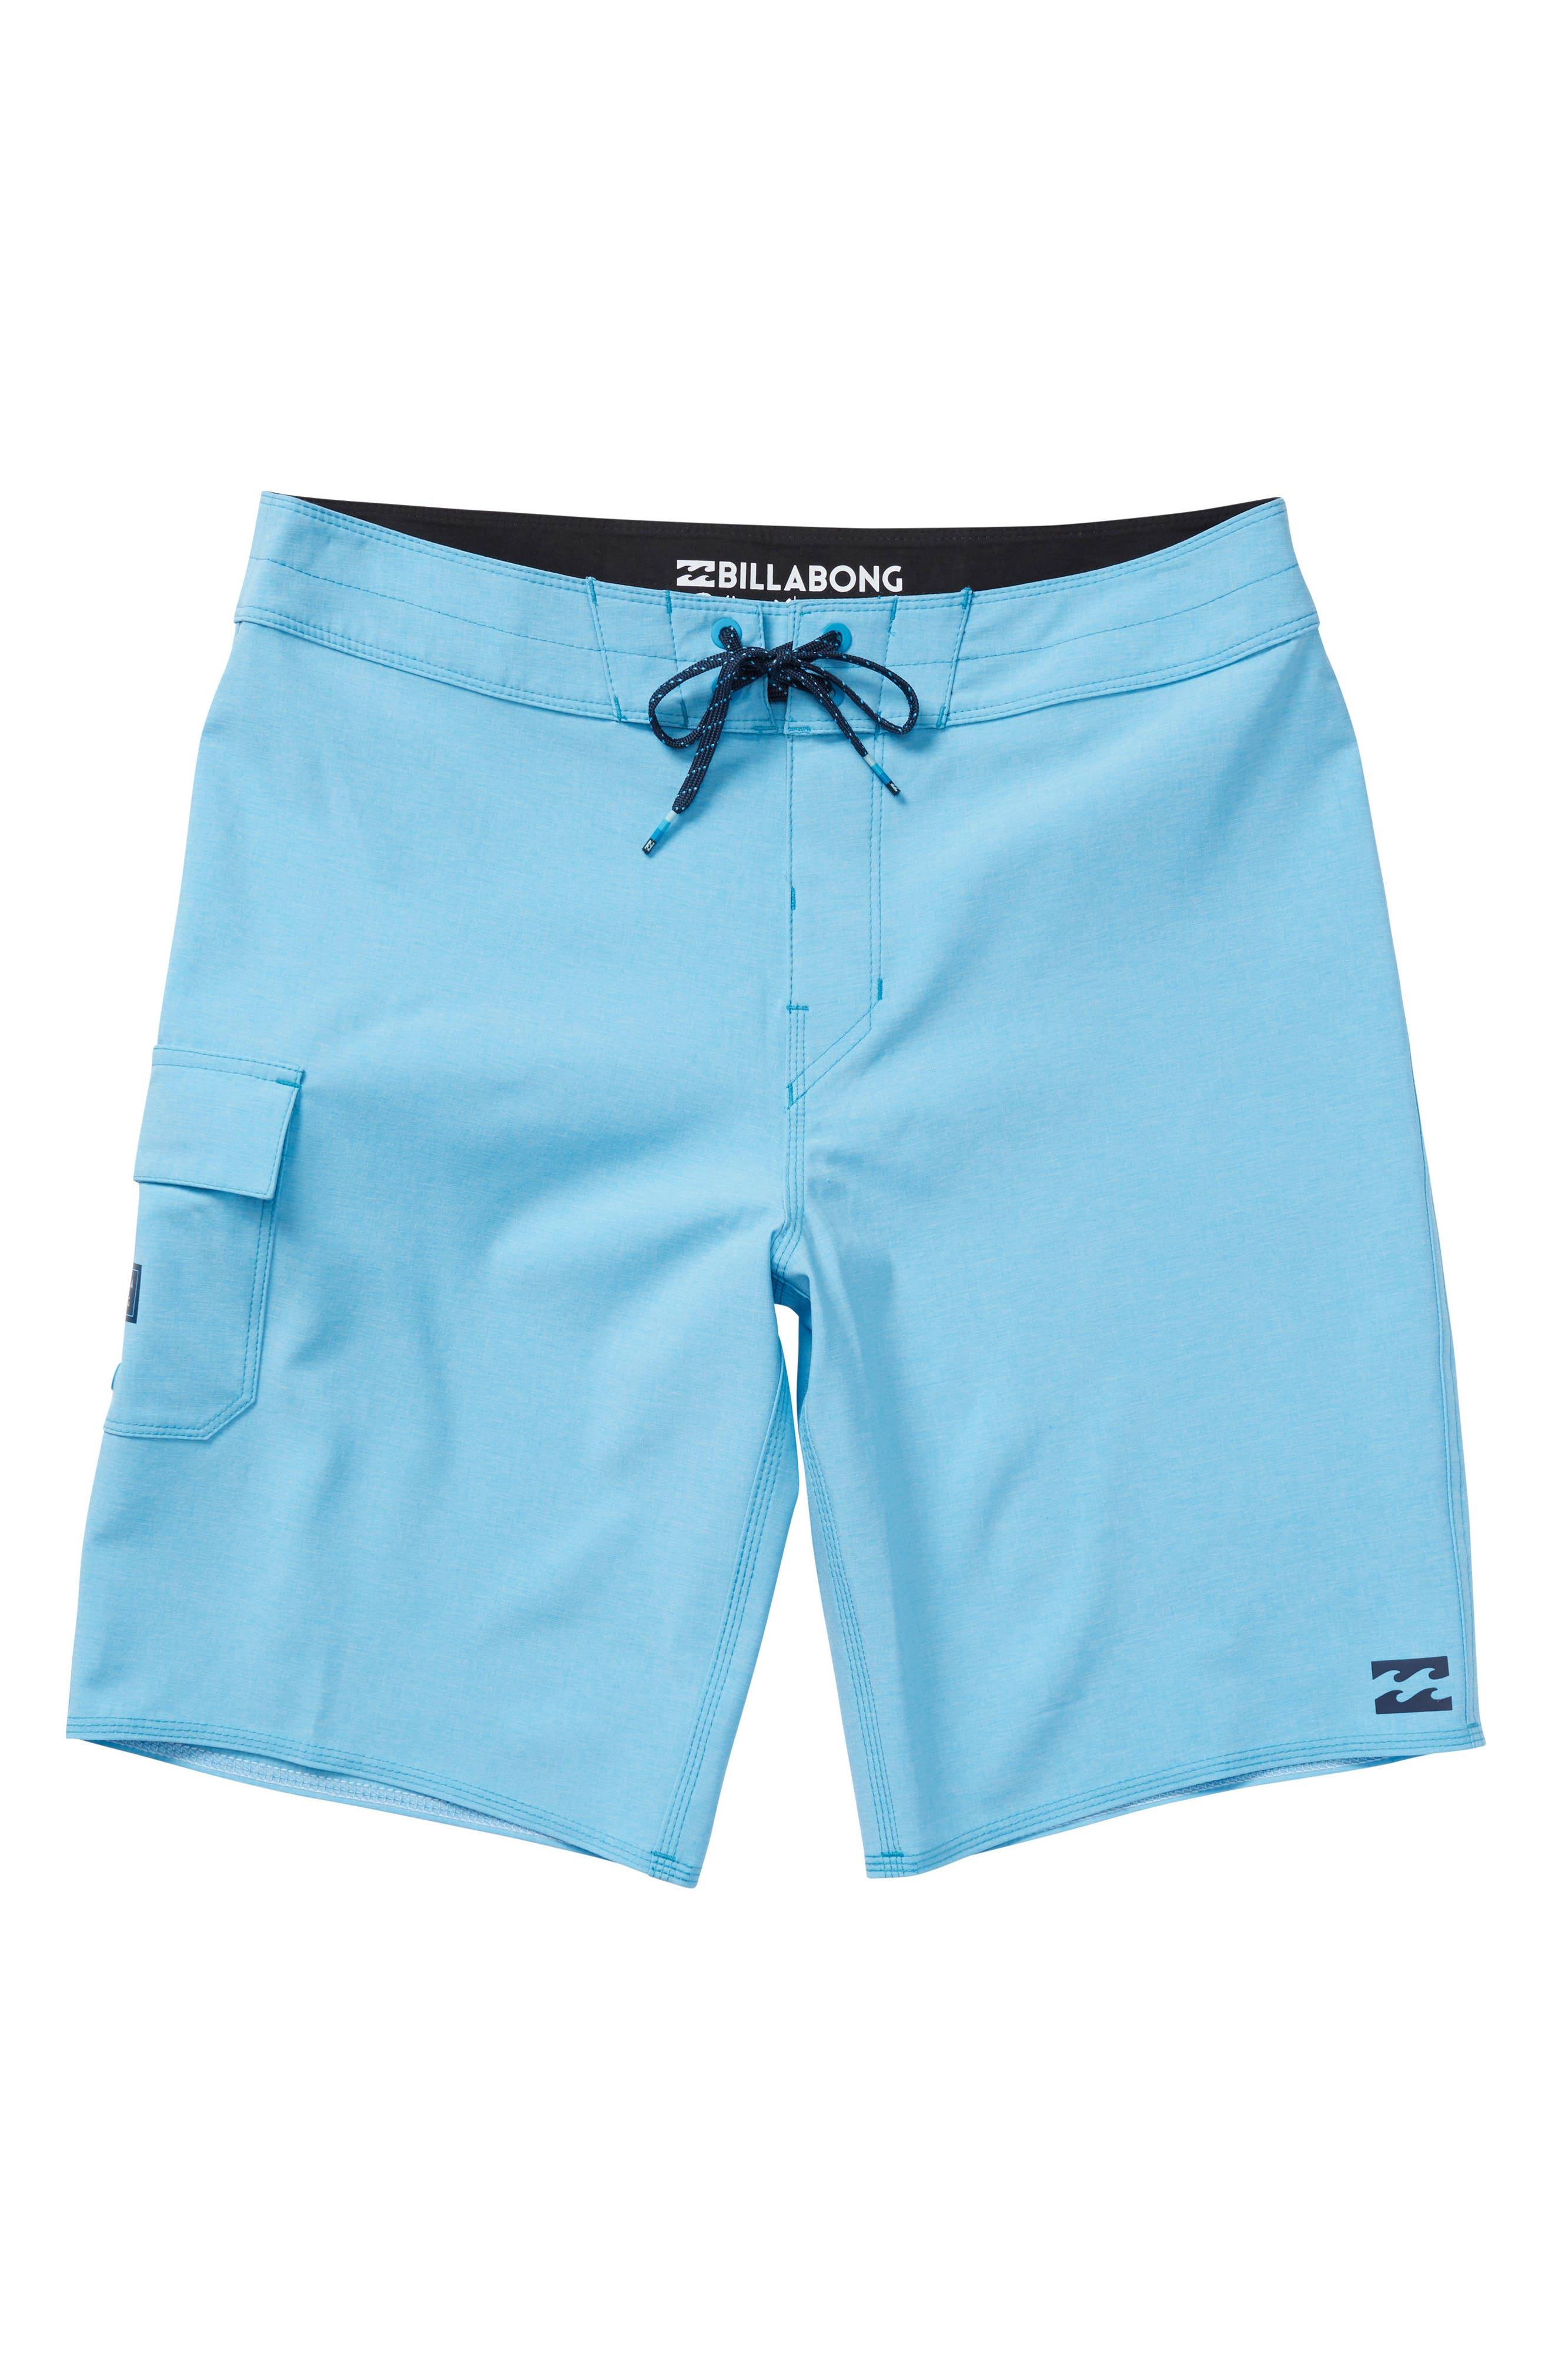 All Day X Board Shorts,                         Main,                         color, BLUE HEATHER